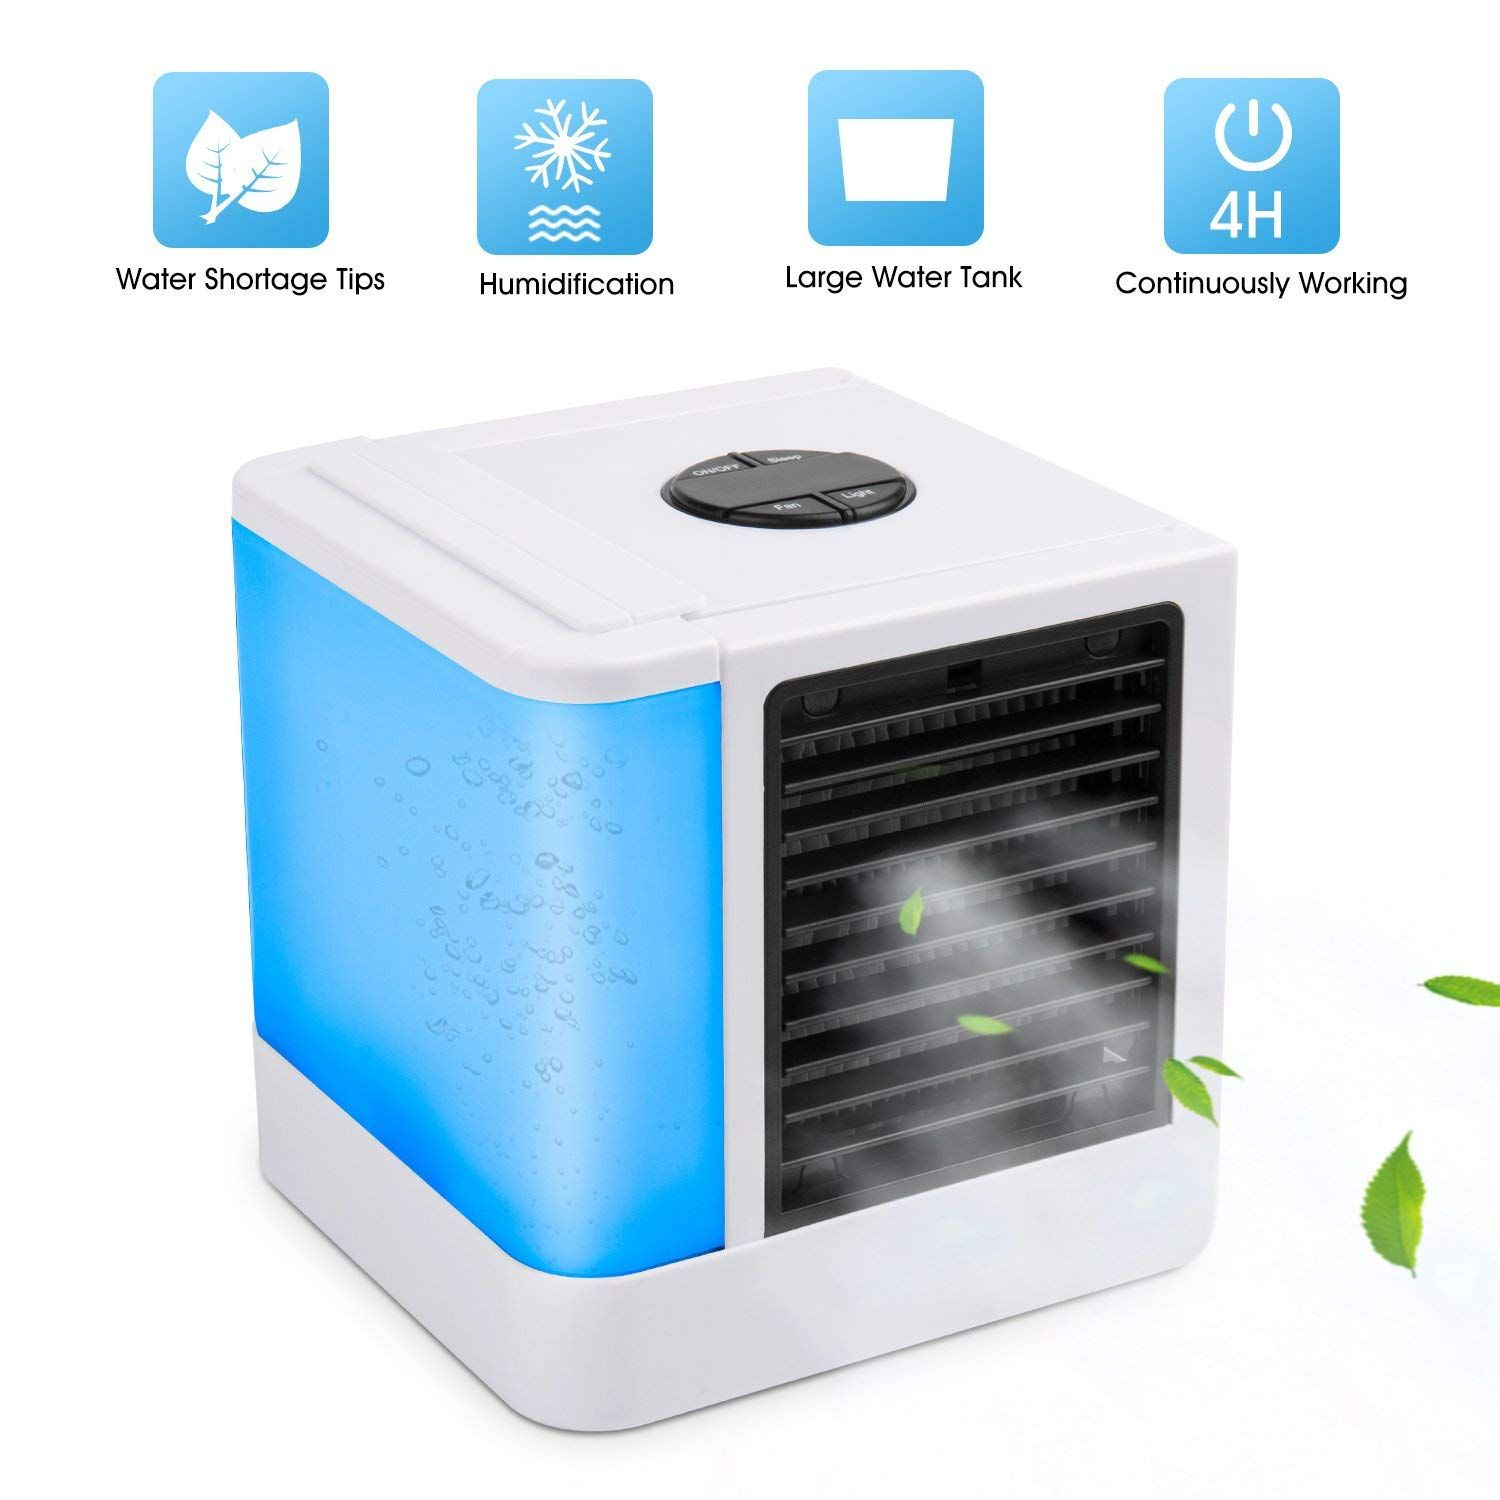 ROSKY Personal Air Conditioner Fan, 3 in 1 Air